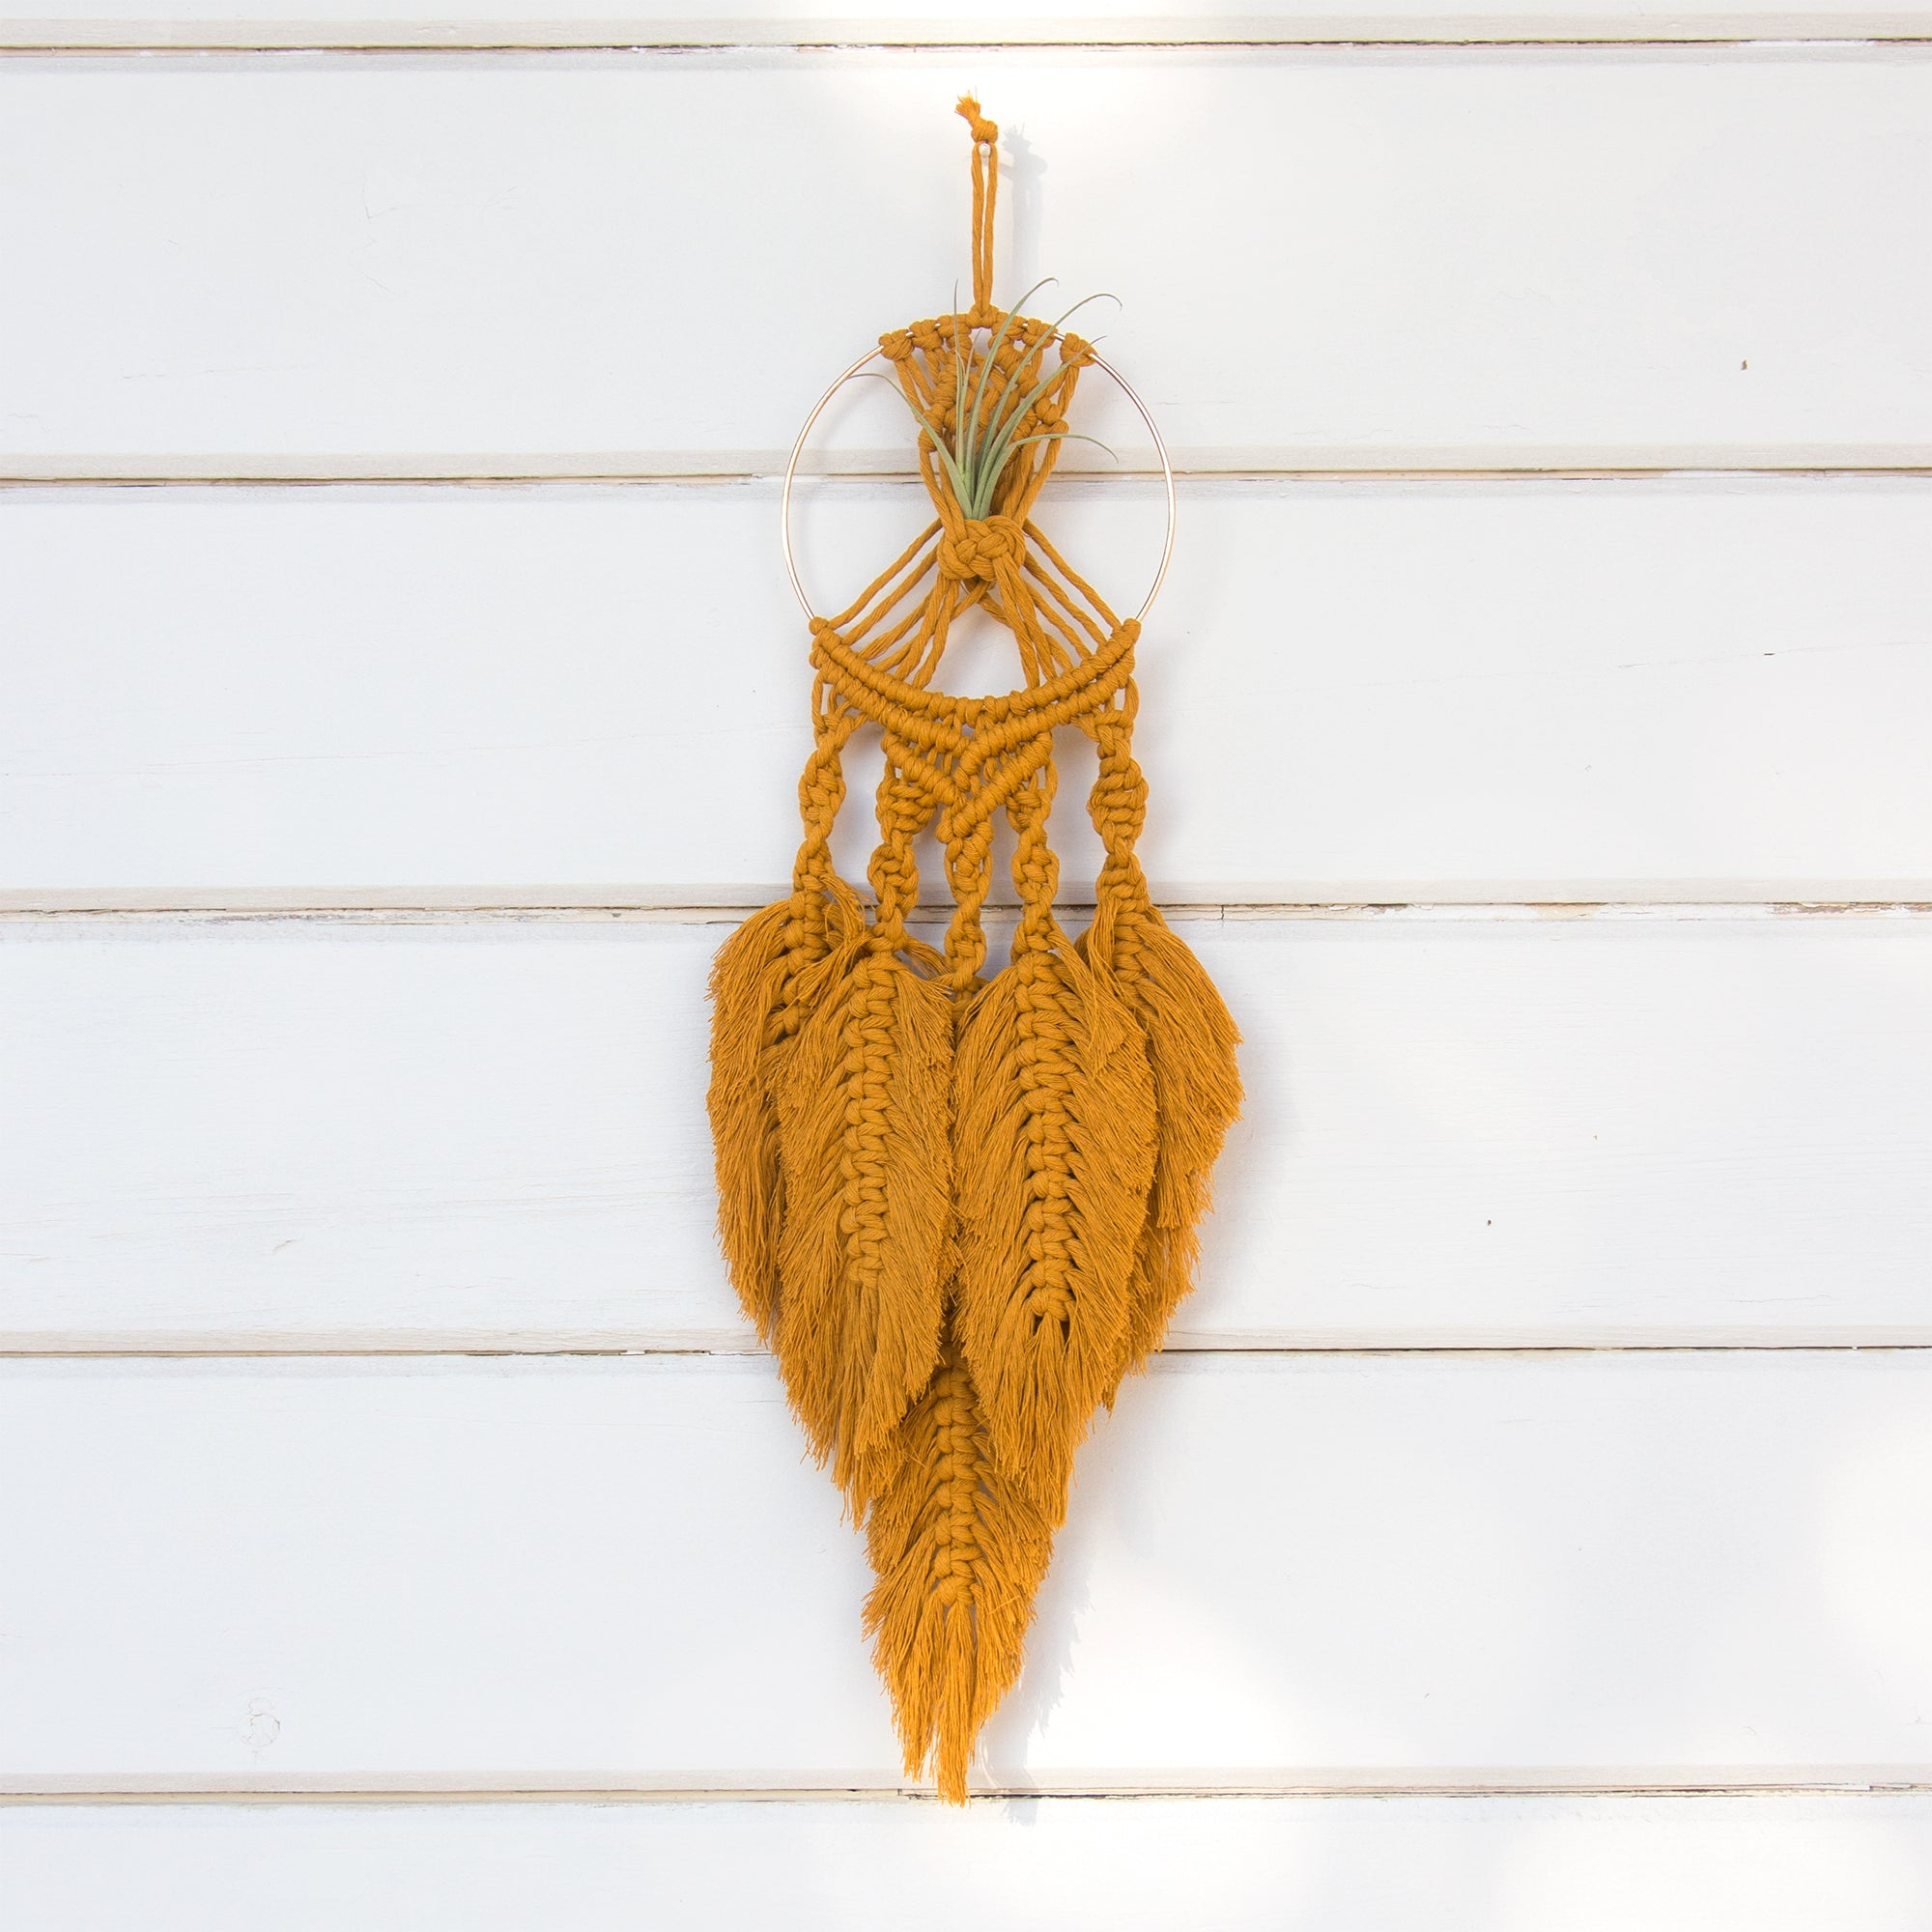 Dreamcatcher Macrame Air Plant Holder - Bohemian Home Decor Wall Hanging